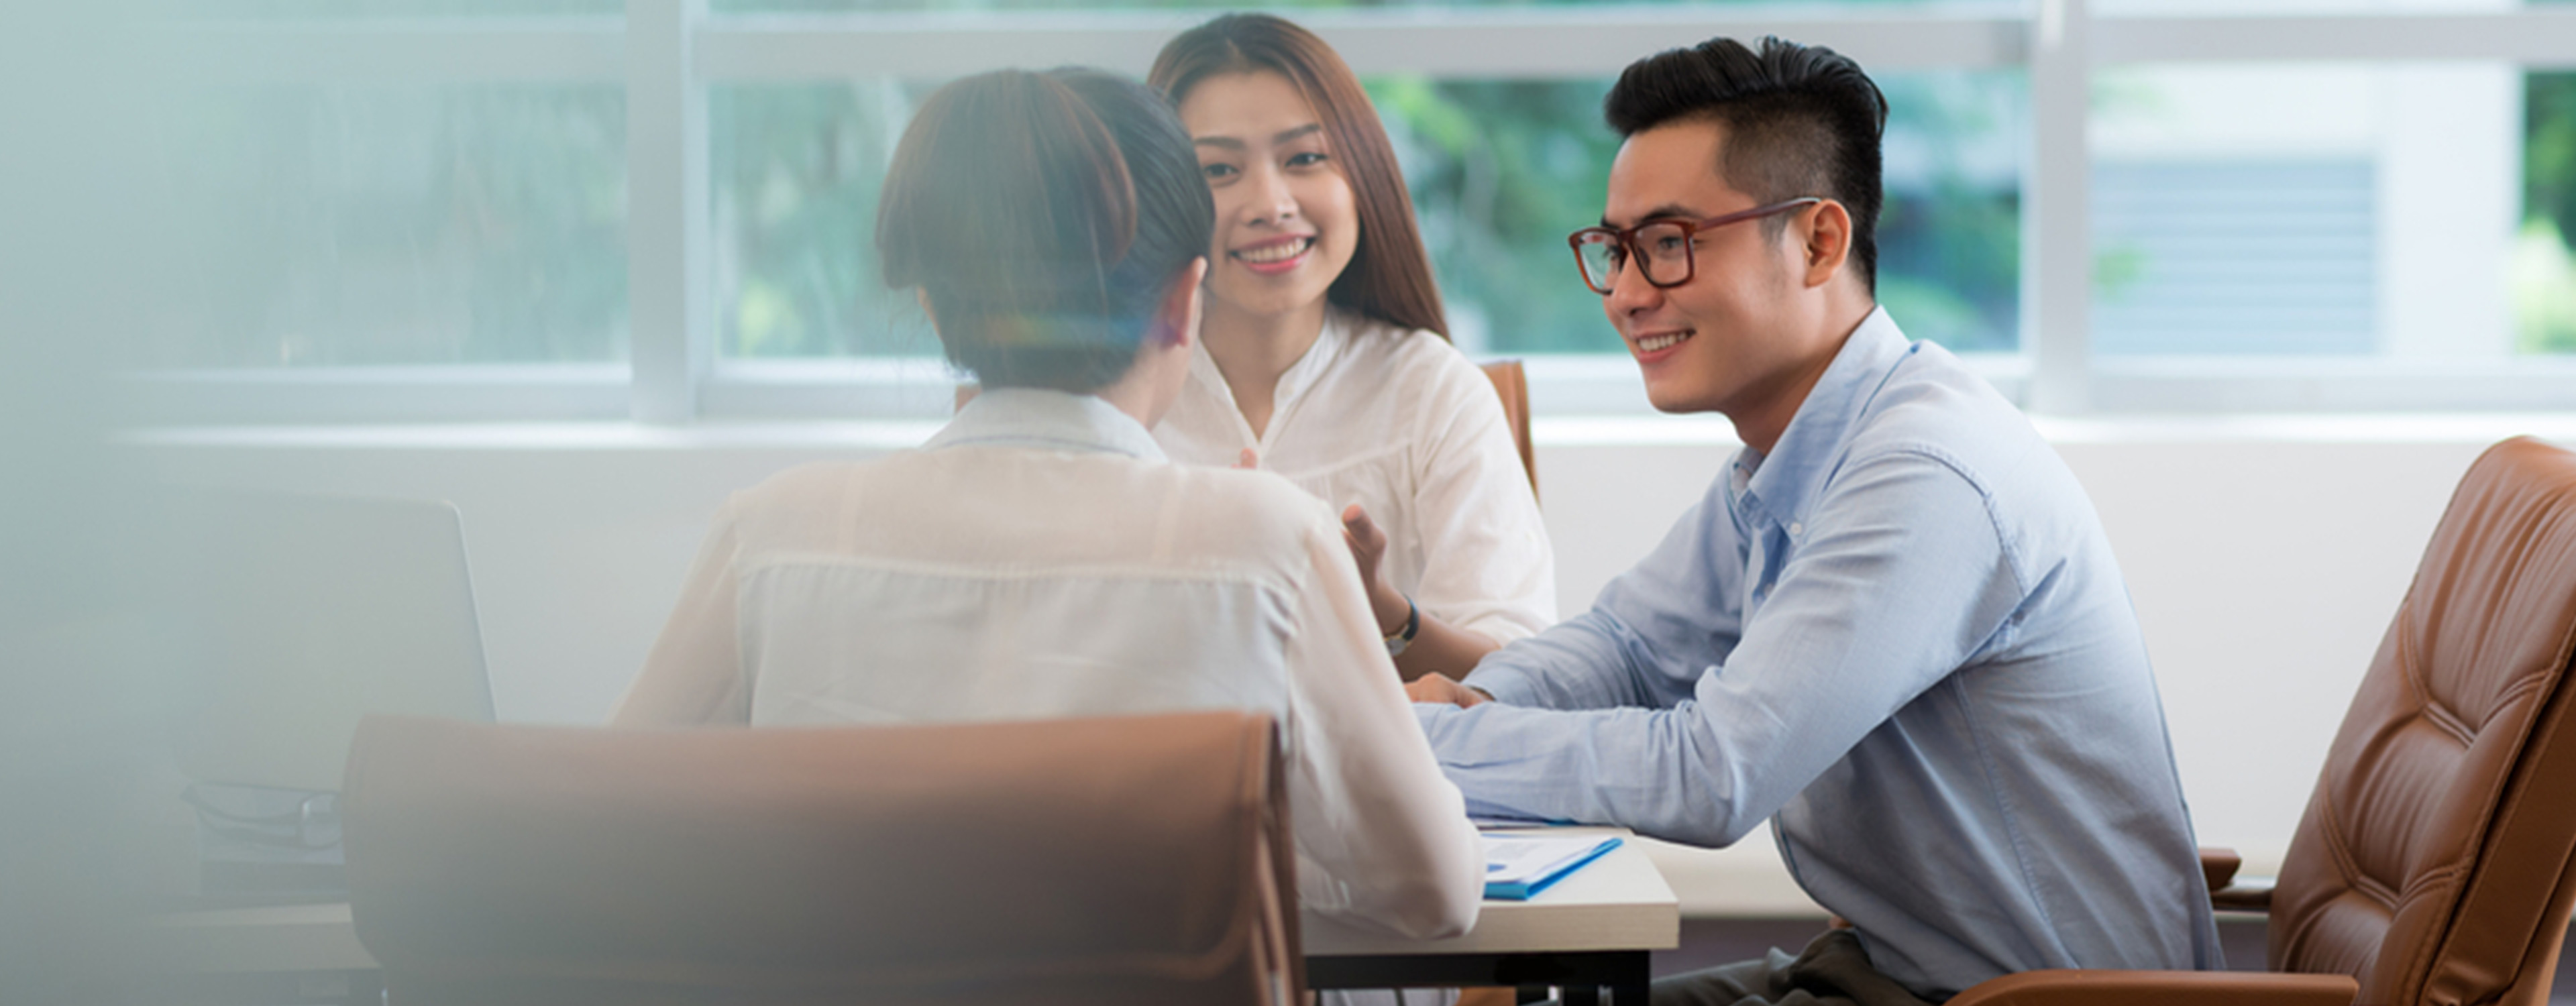 How to demonstrate your interpersonal skills in the workplace